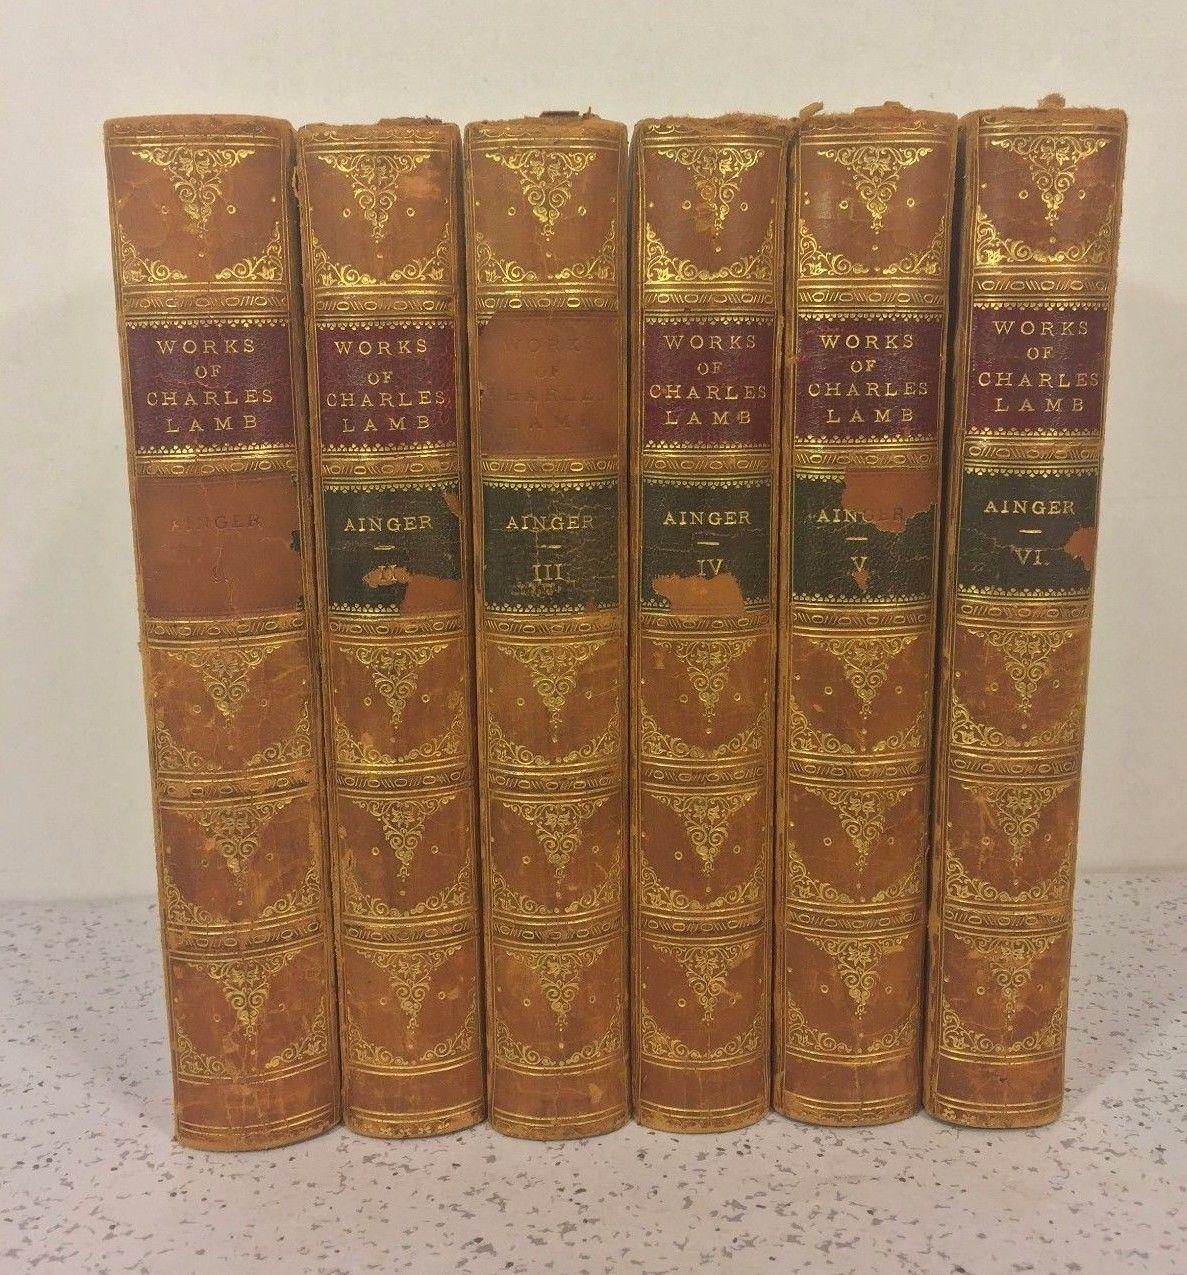 antique books works of charles lamb 6 volumes 1893 from roll over large image to magnify click large image to zoom